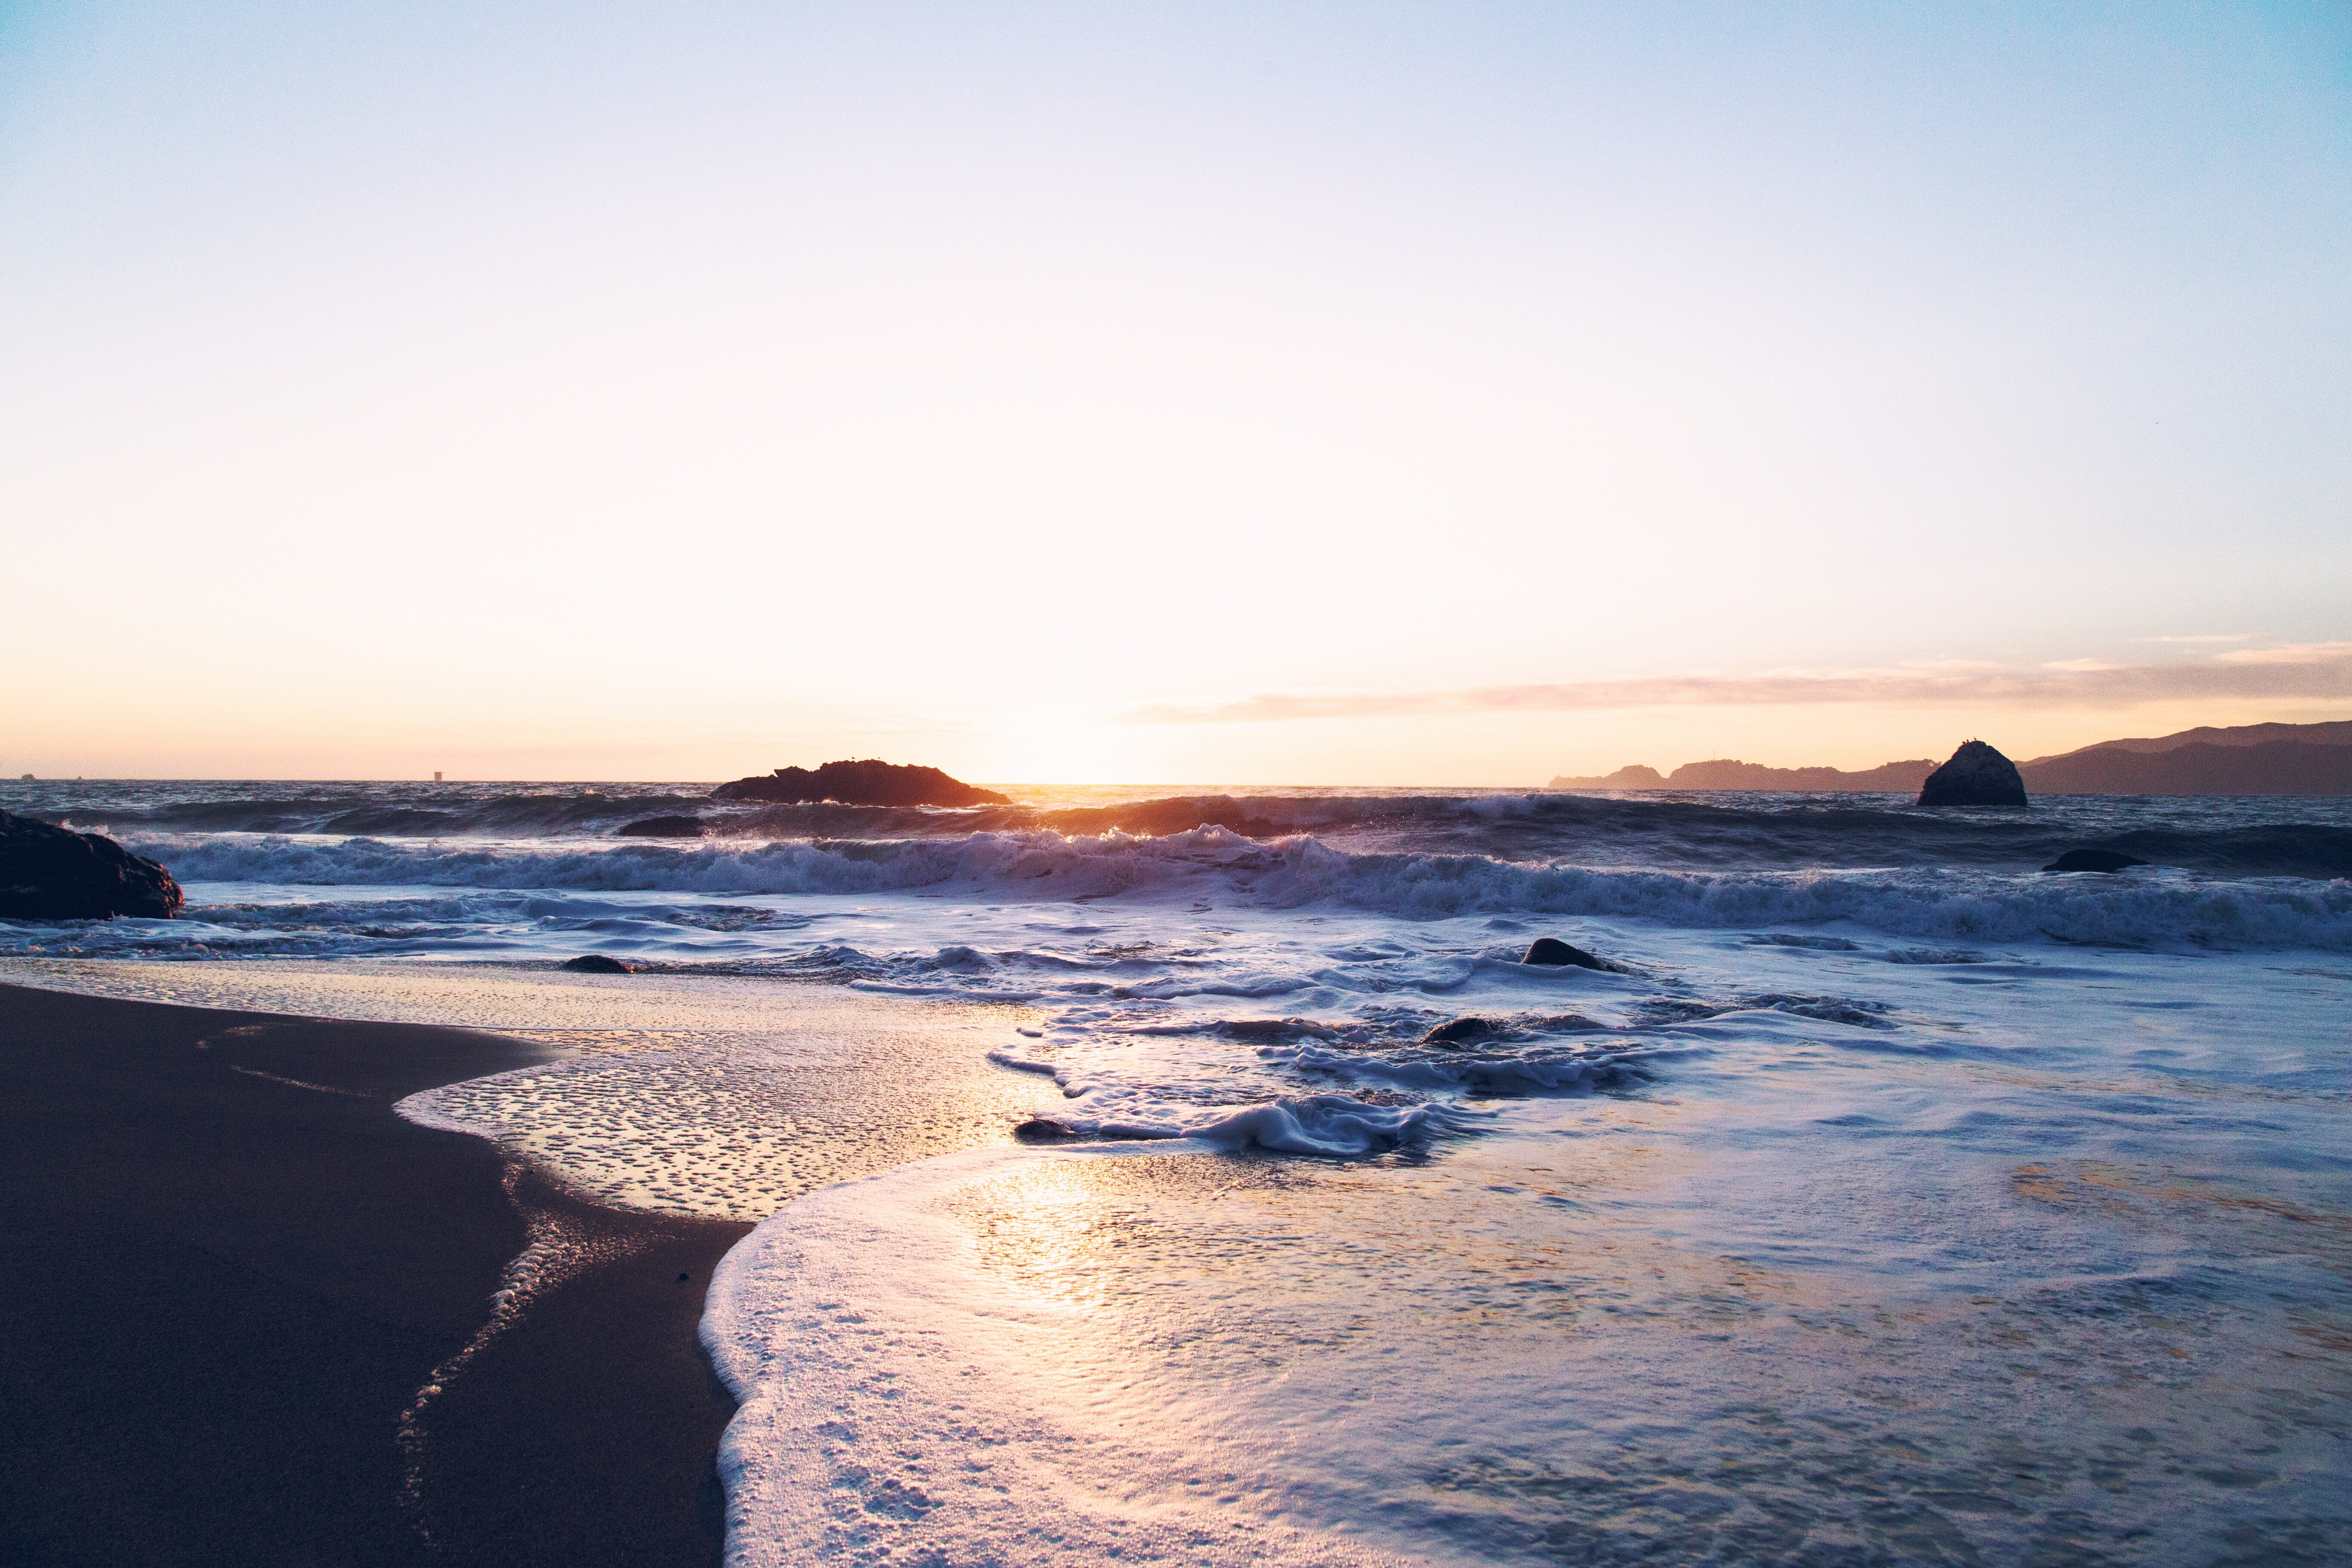 Landscape view of lonely beach with the busy ocean at sunrise